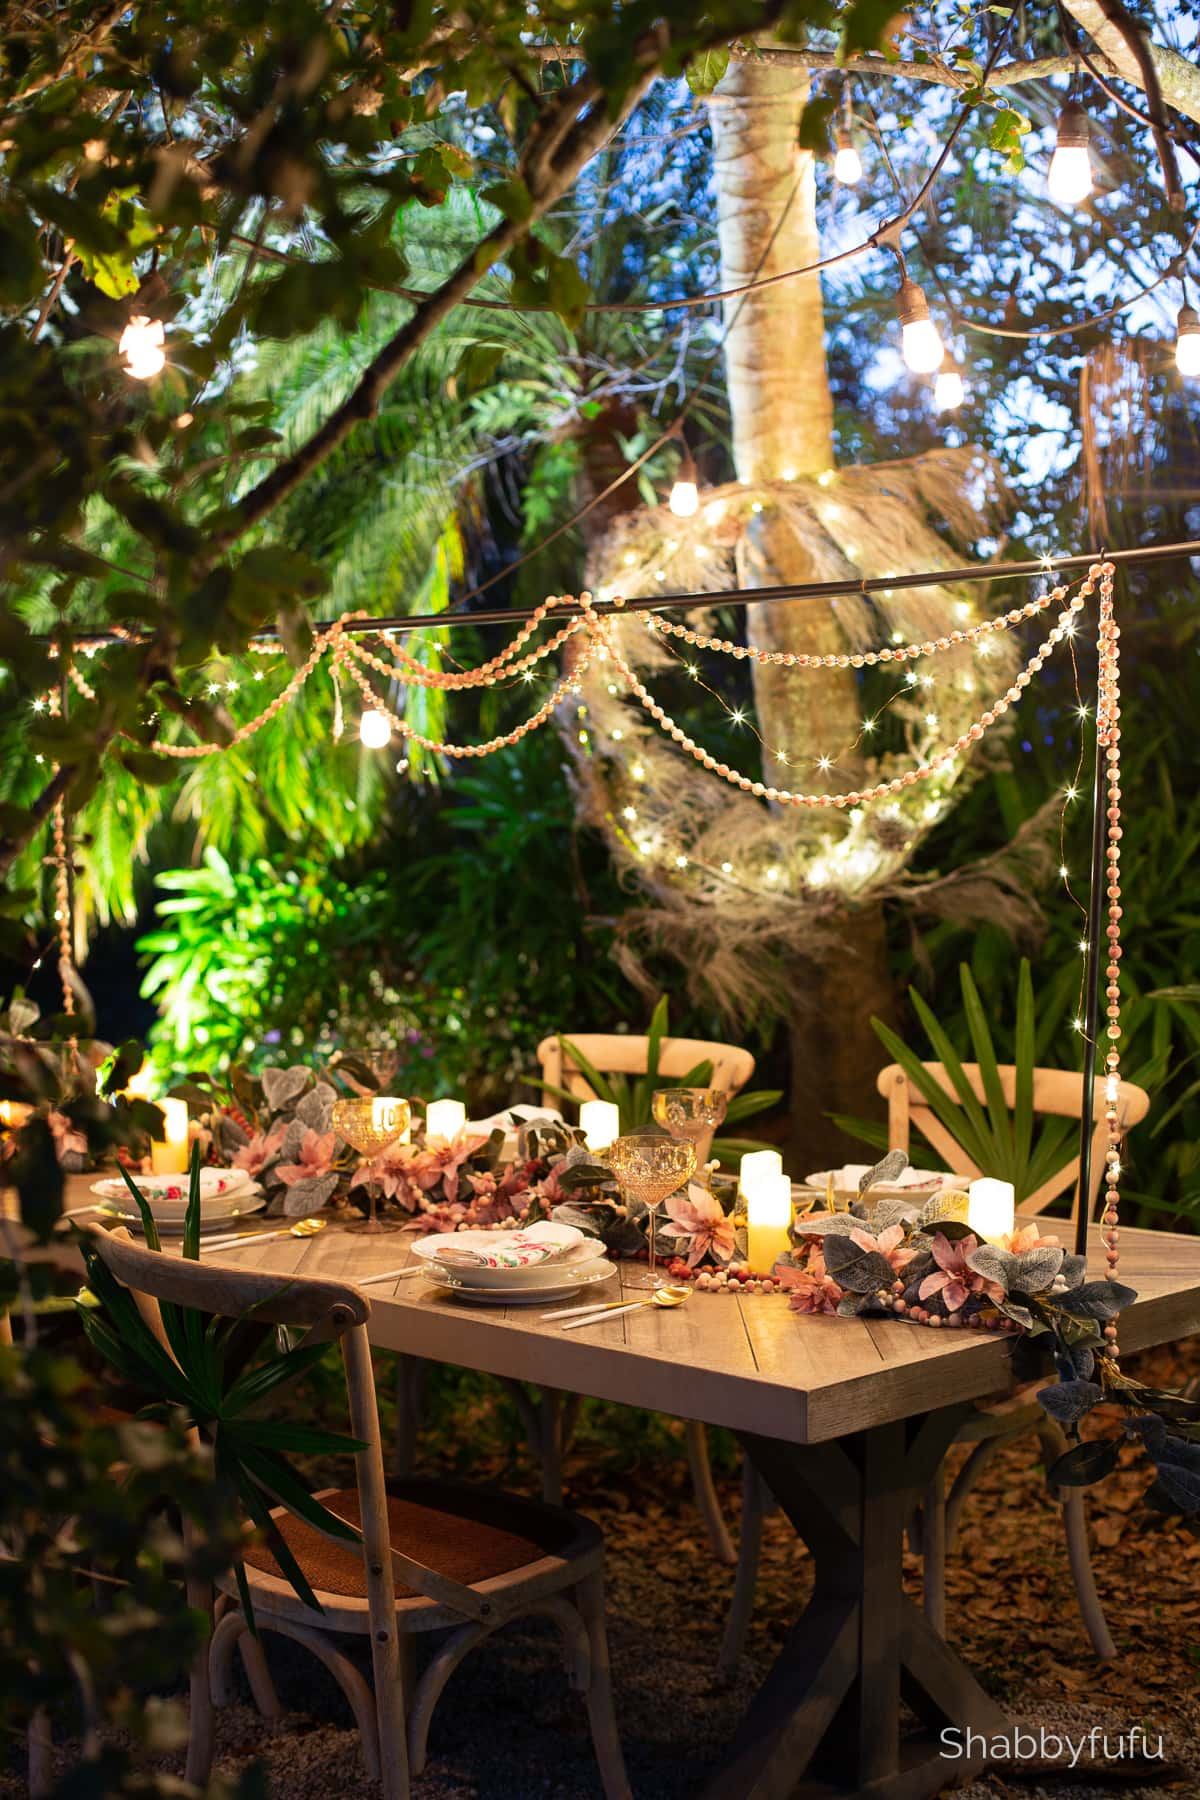 outdoor tablescape at night with lights and candles